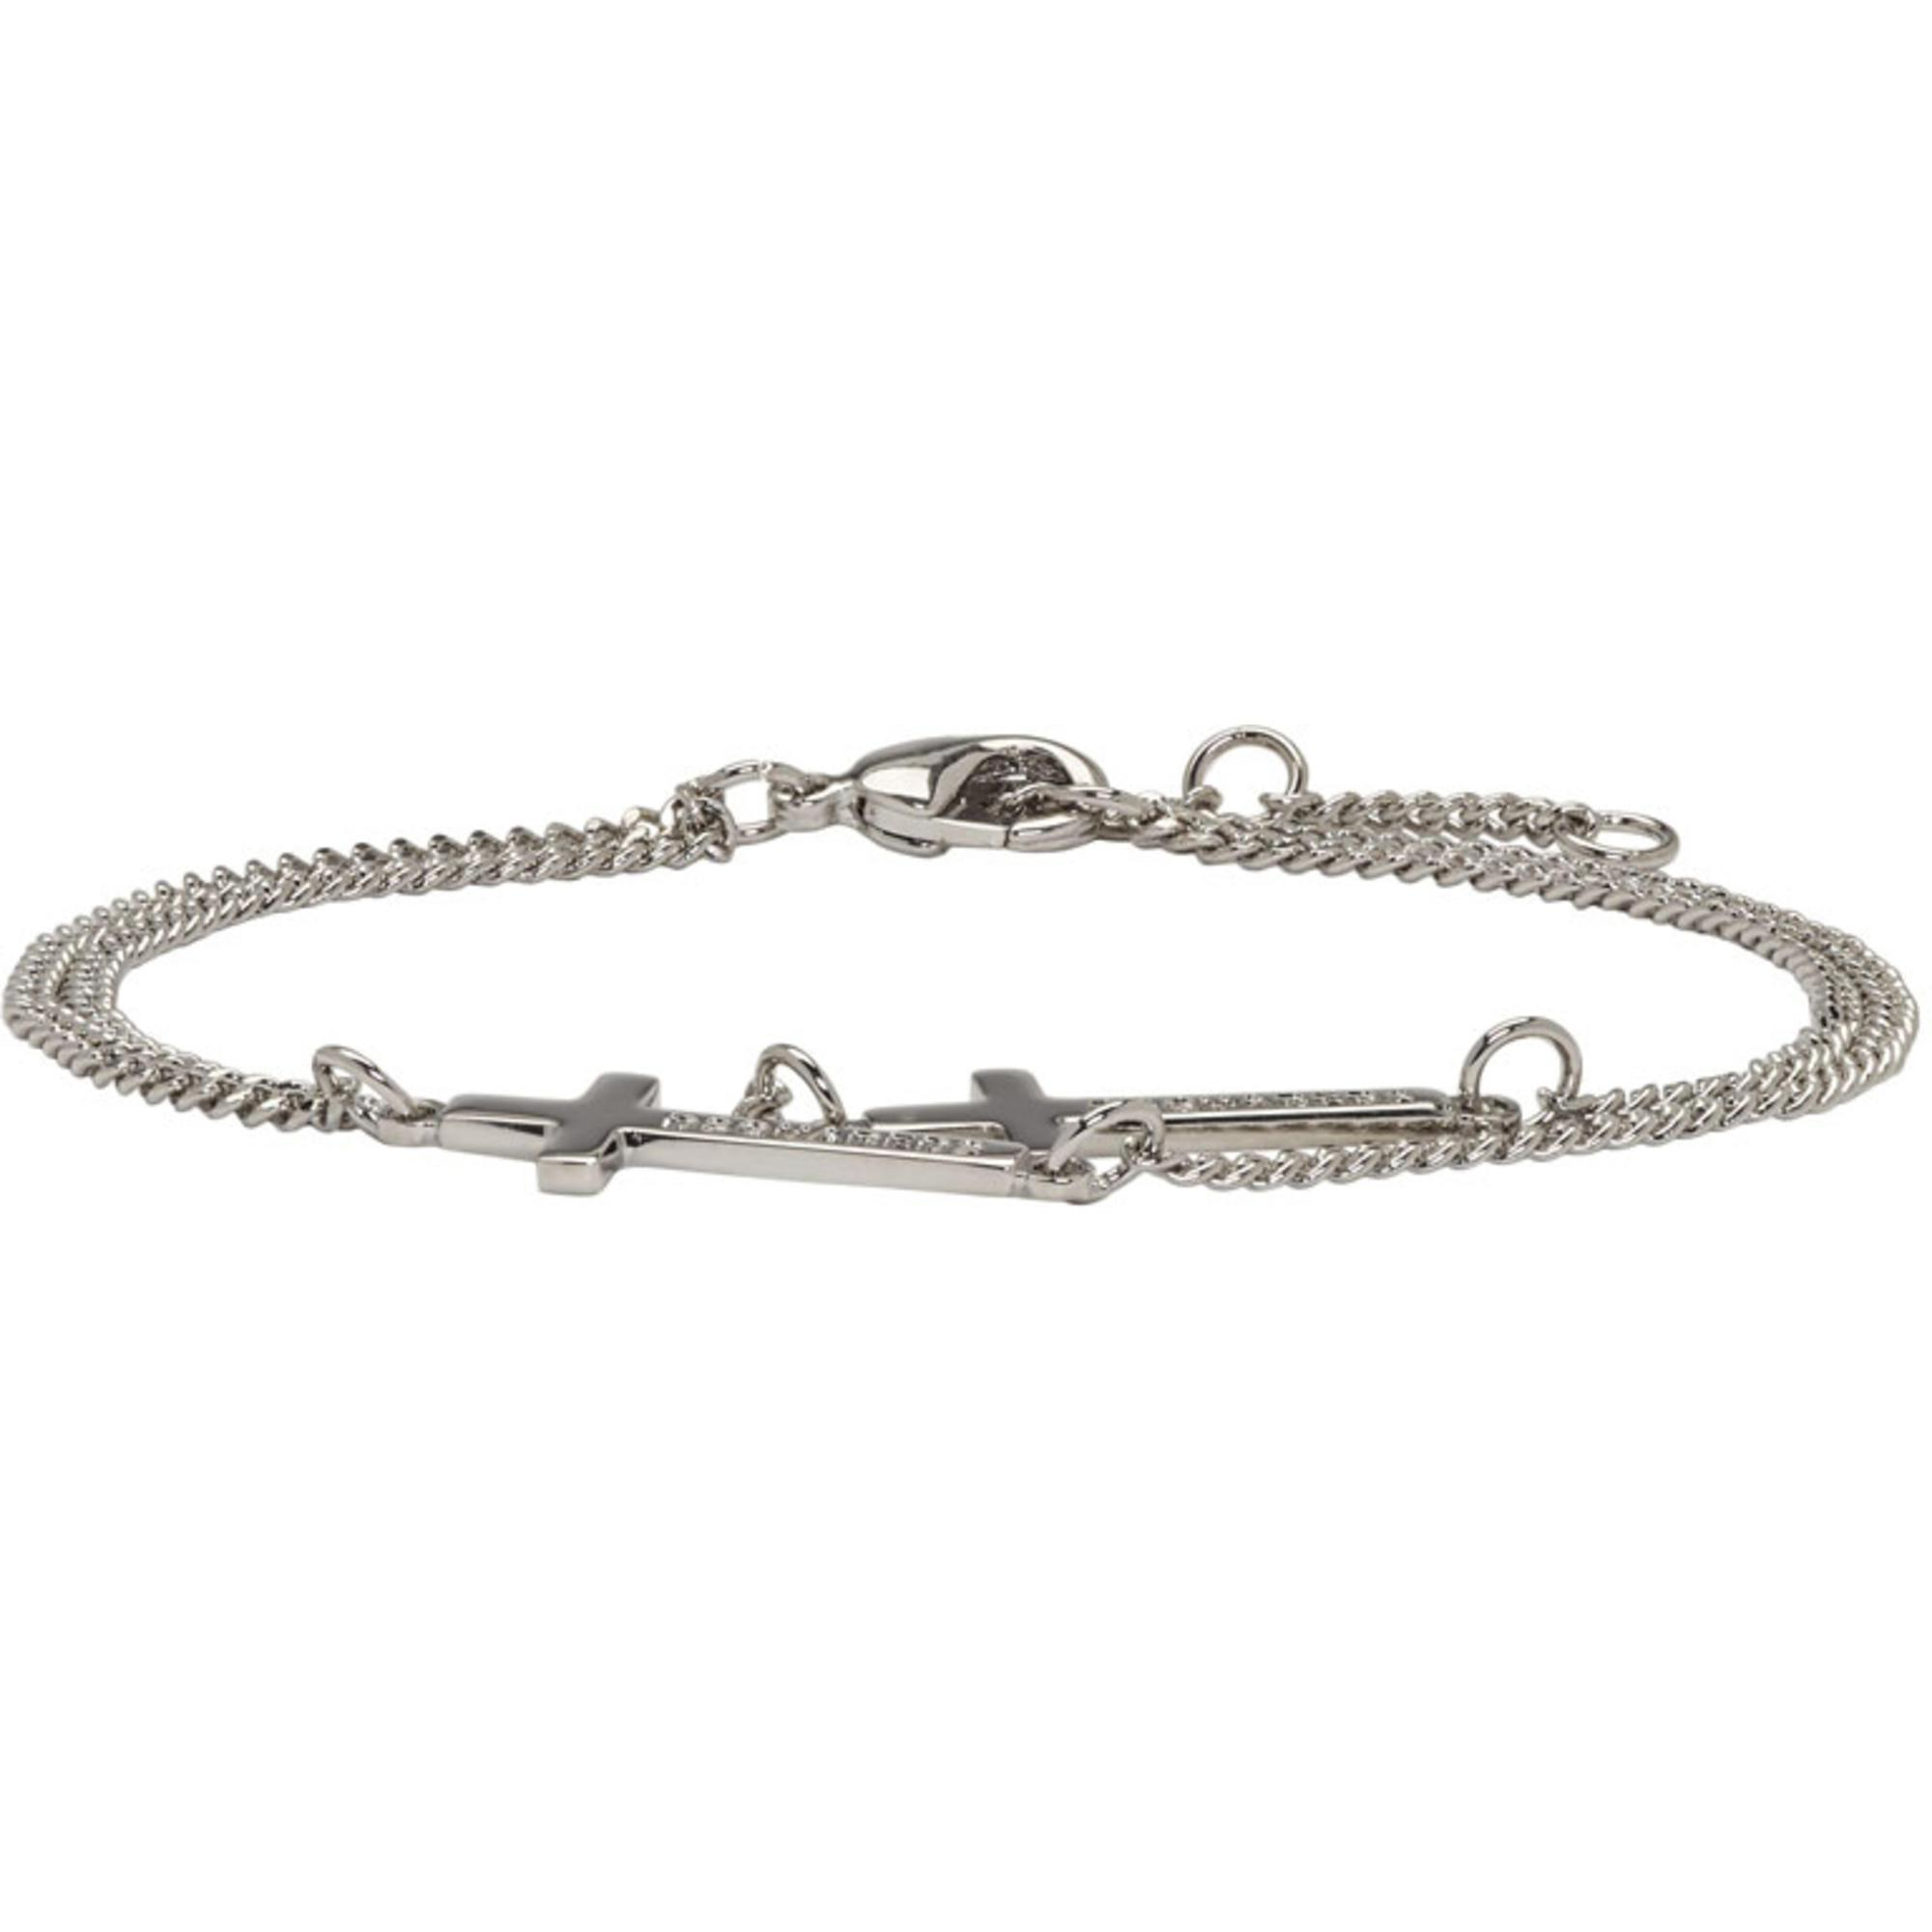 engraved cross bracelet - Metallic Dsquared2